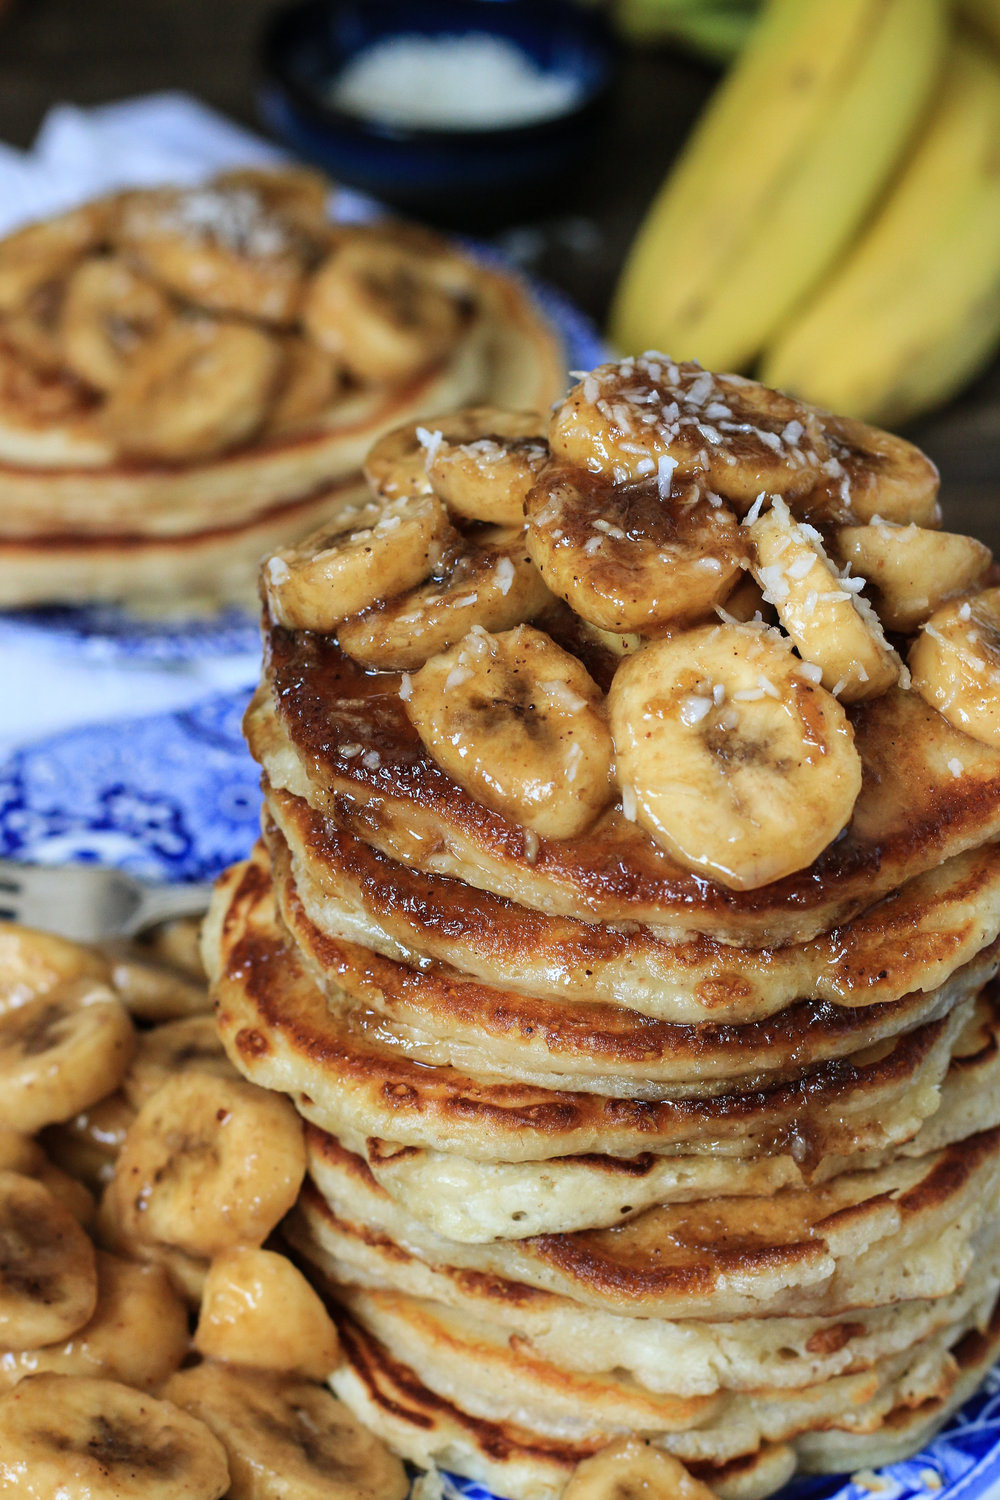 Fluffy+Coconut+Pancakes+with+Bananas+Foster-2.jpg